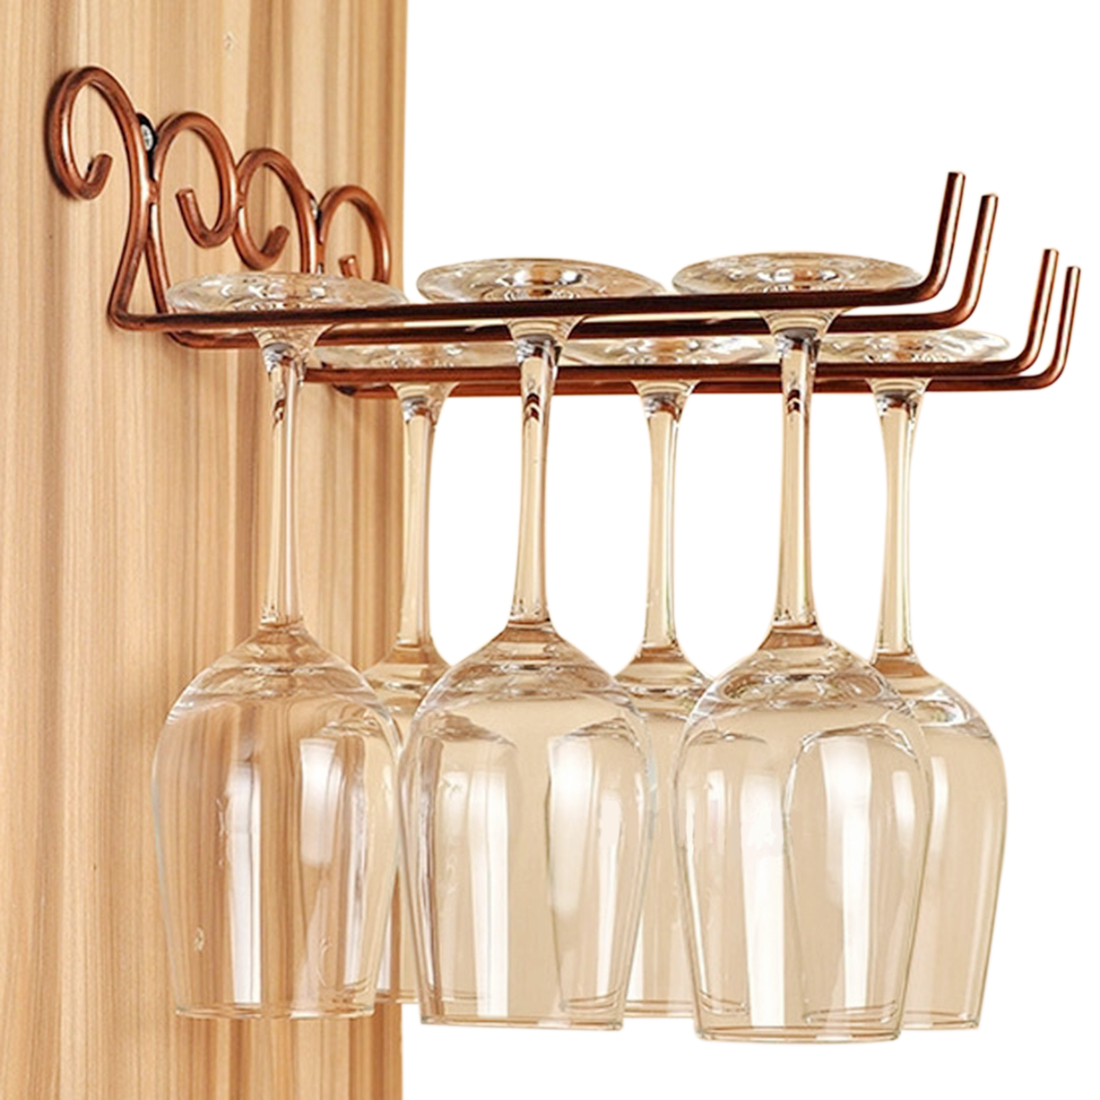 2 Rows Stainless Steel Side Stand Wine Gl Hanger Rack Cup Holder Shelf Bronze In Storage Holders Racks From Home Garden On Aliexpress